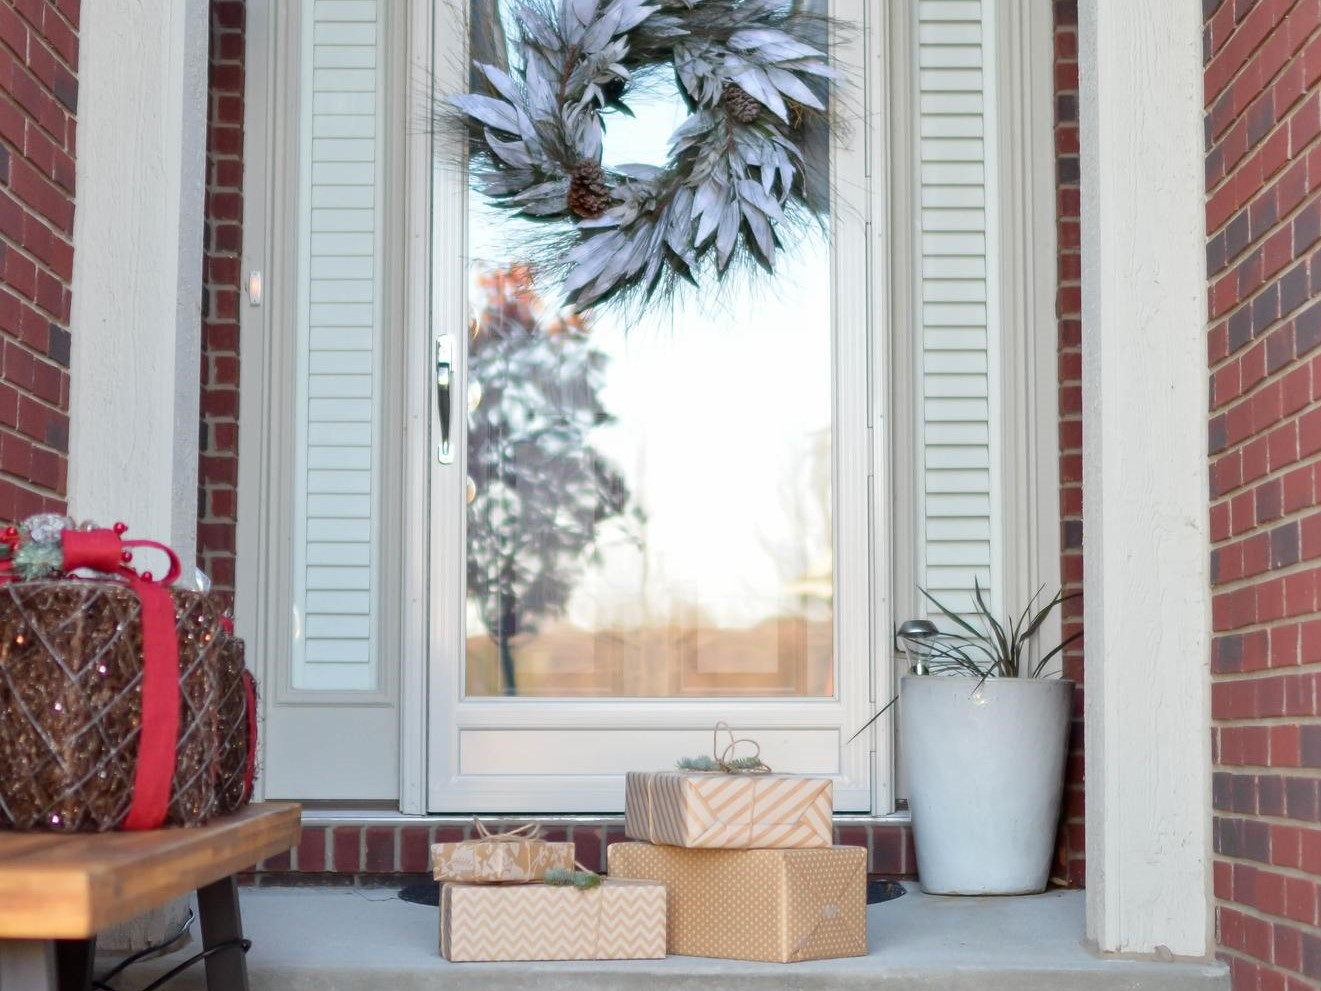 How to Prevent Package Theft at Your Home